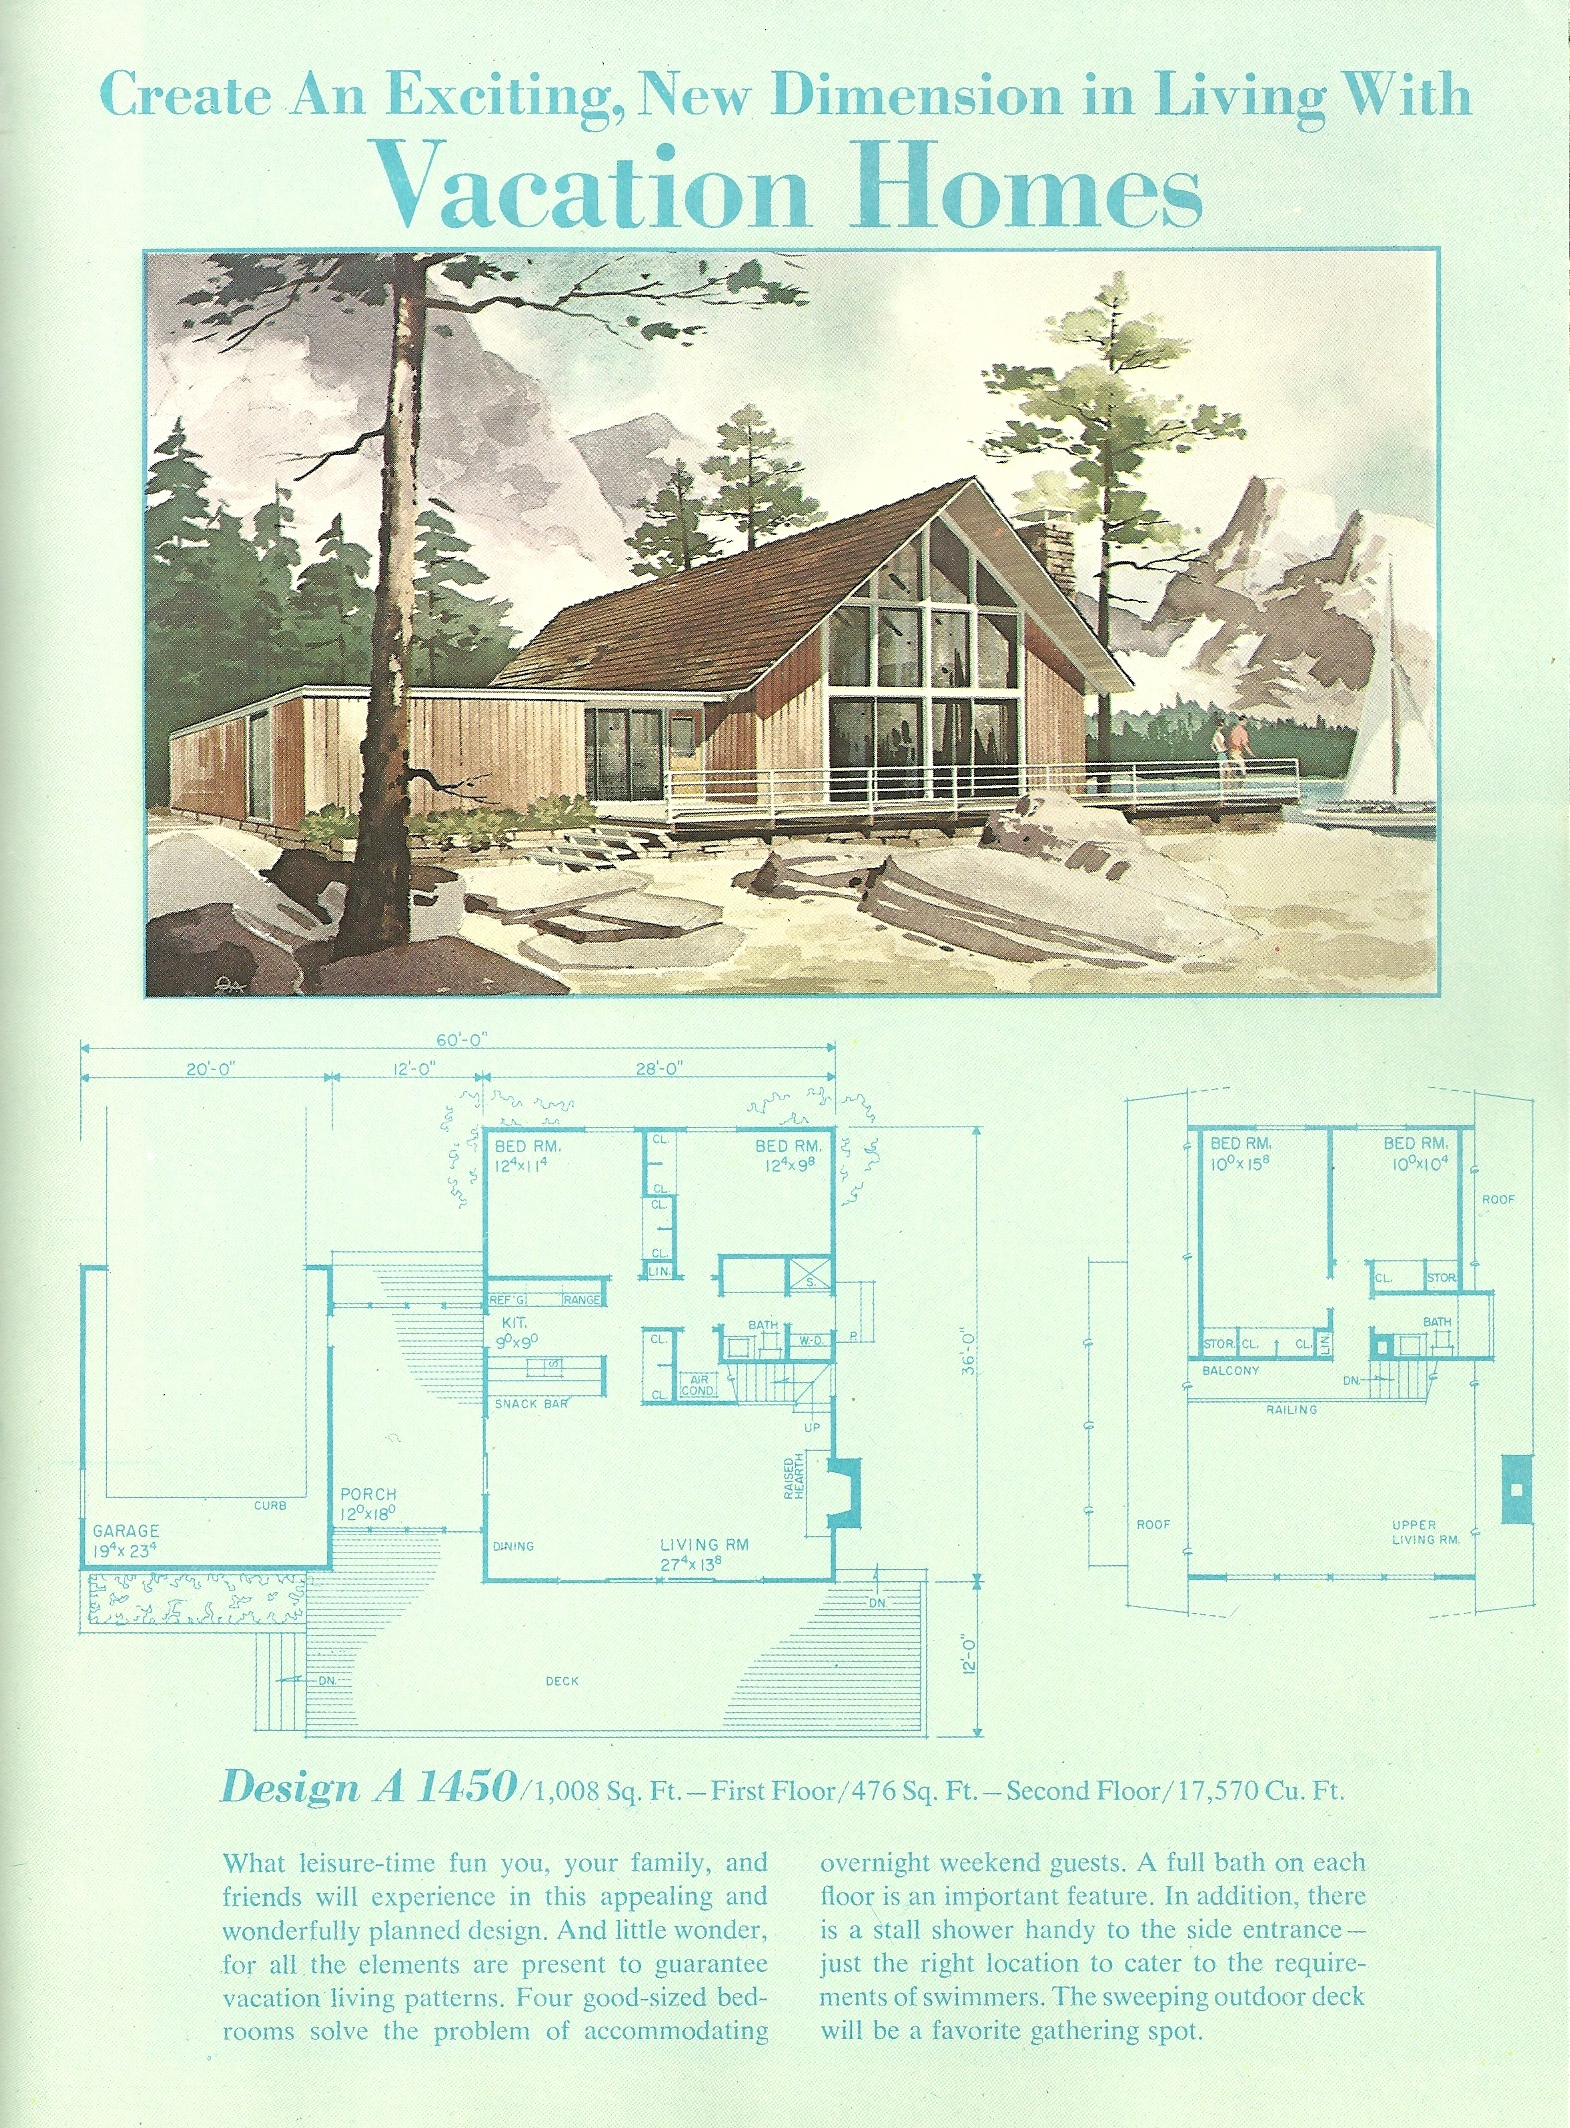 Vintage vacation home plans 1 antique alter ego for Free vacation home plans